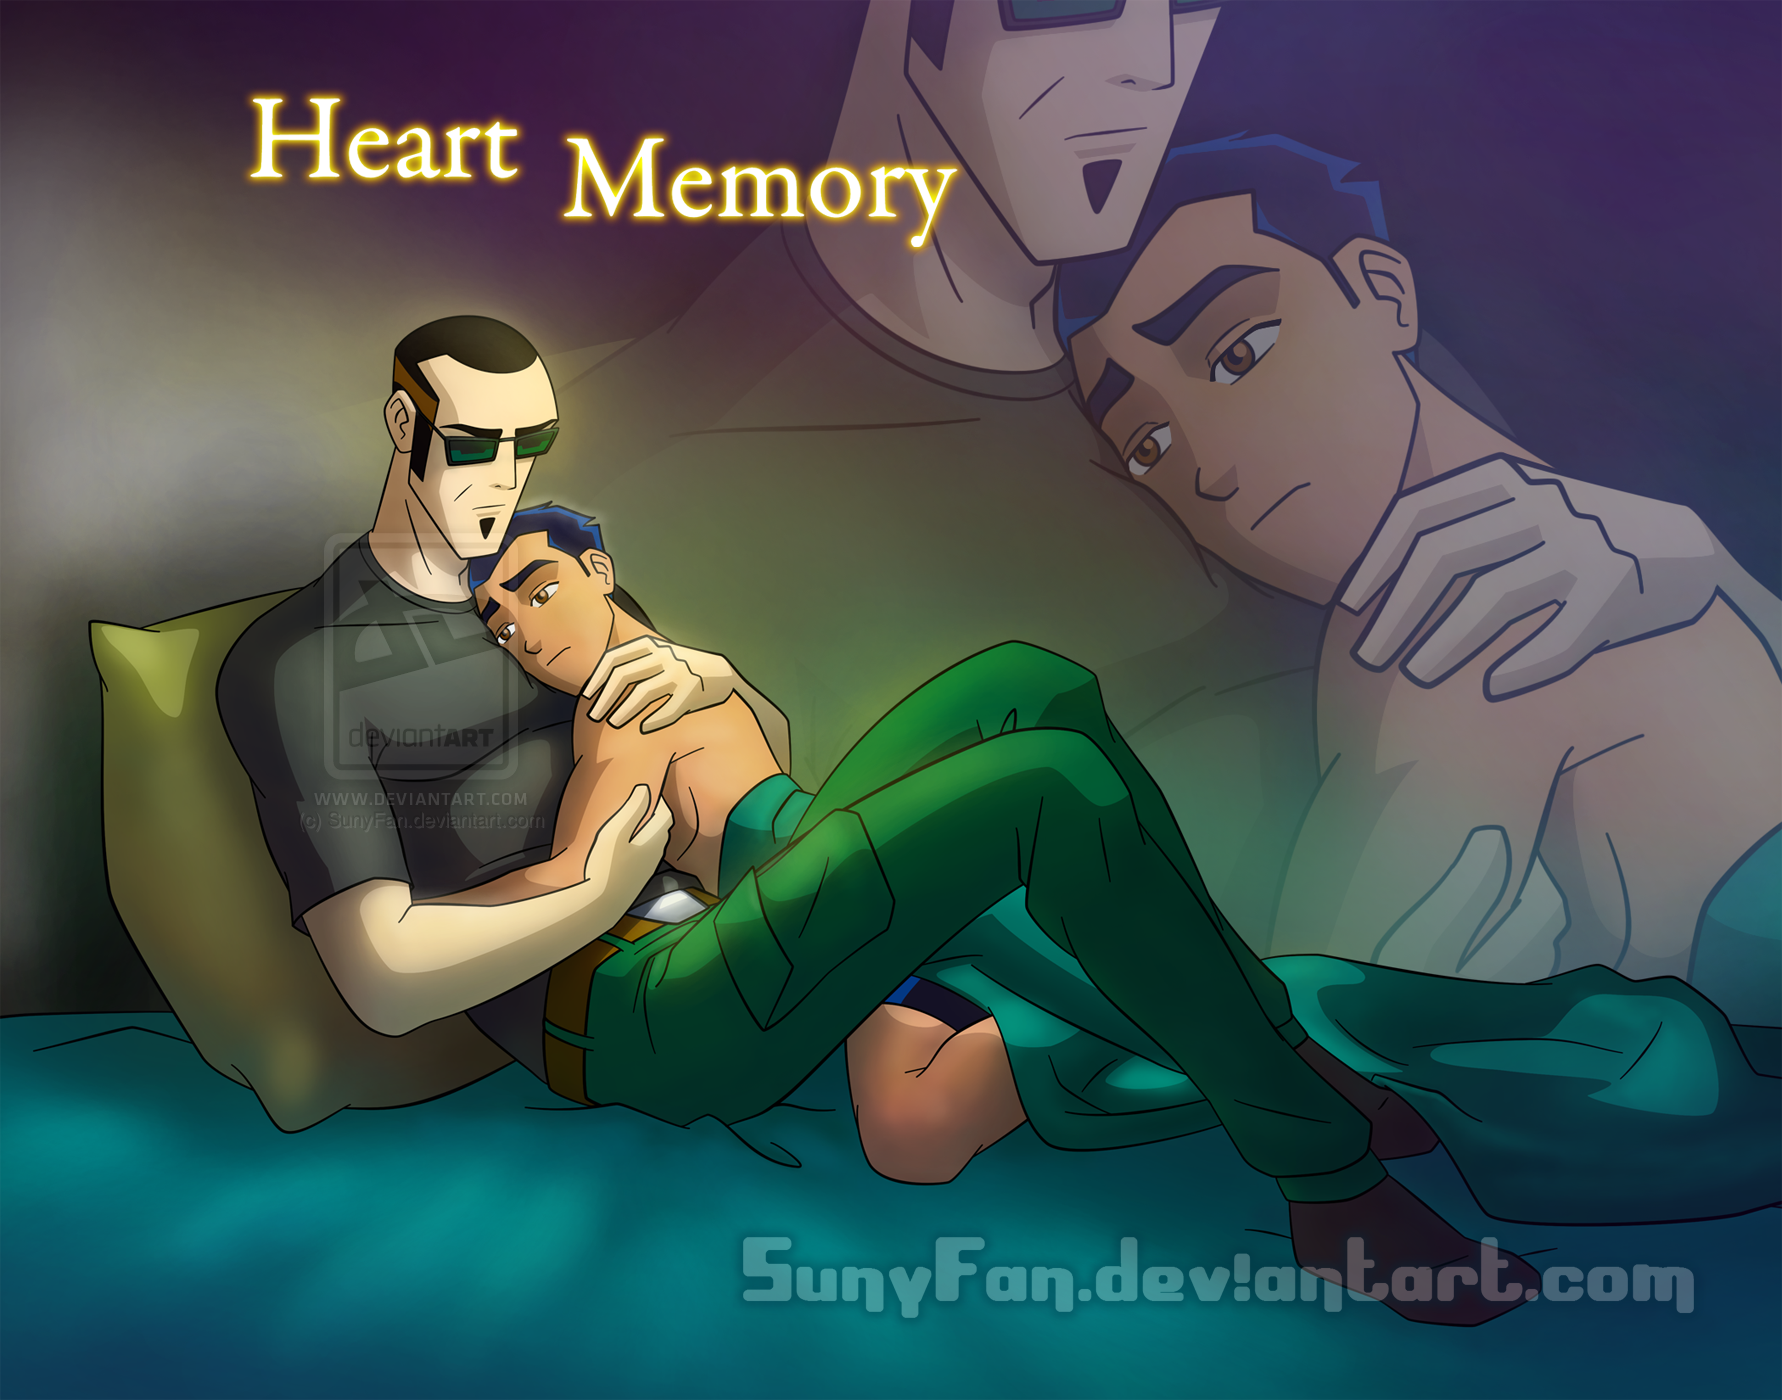 Heart Memory by SunyFan